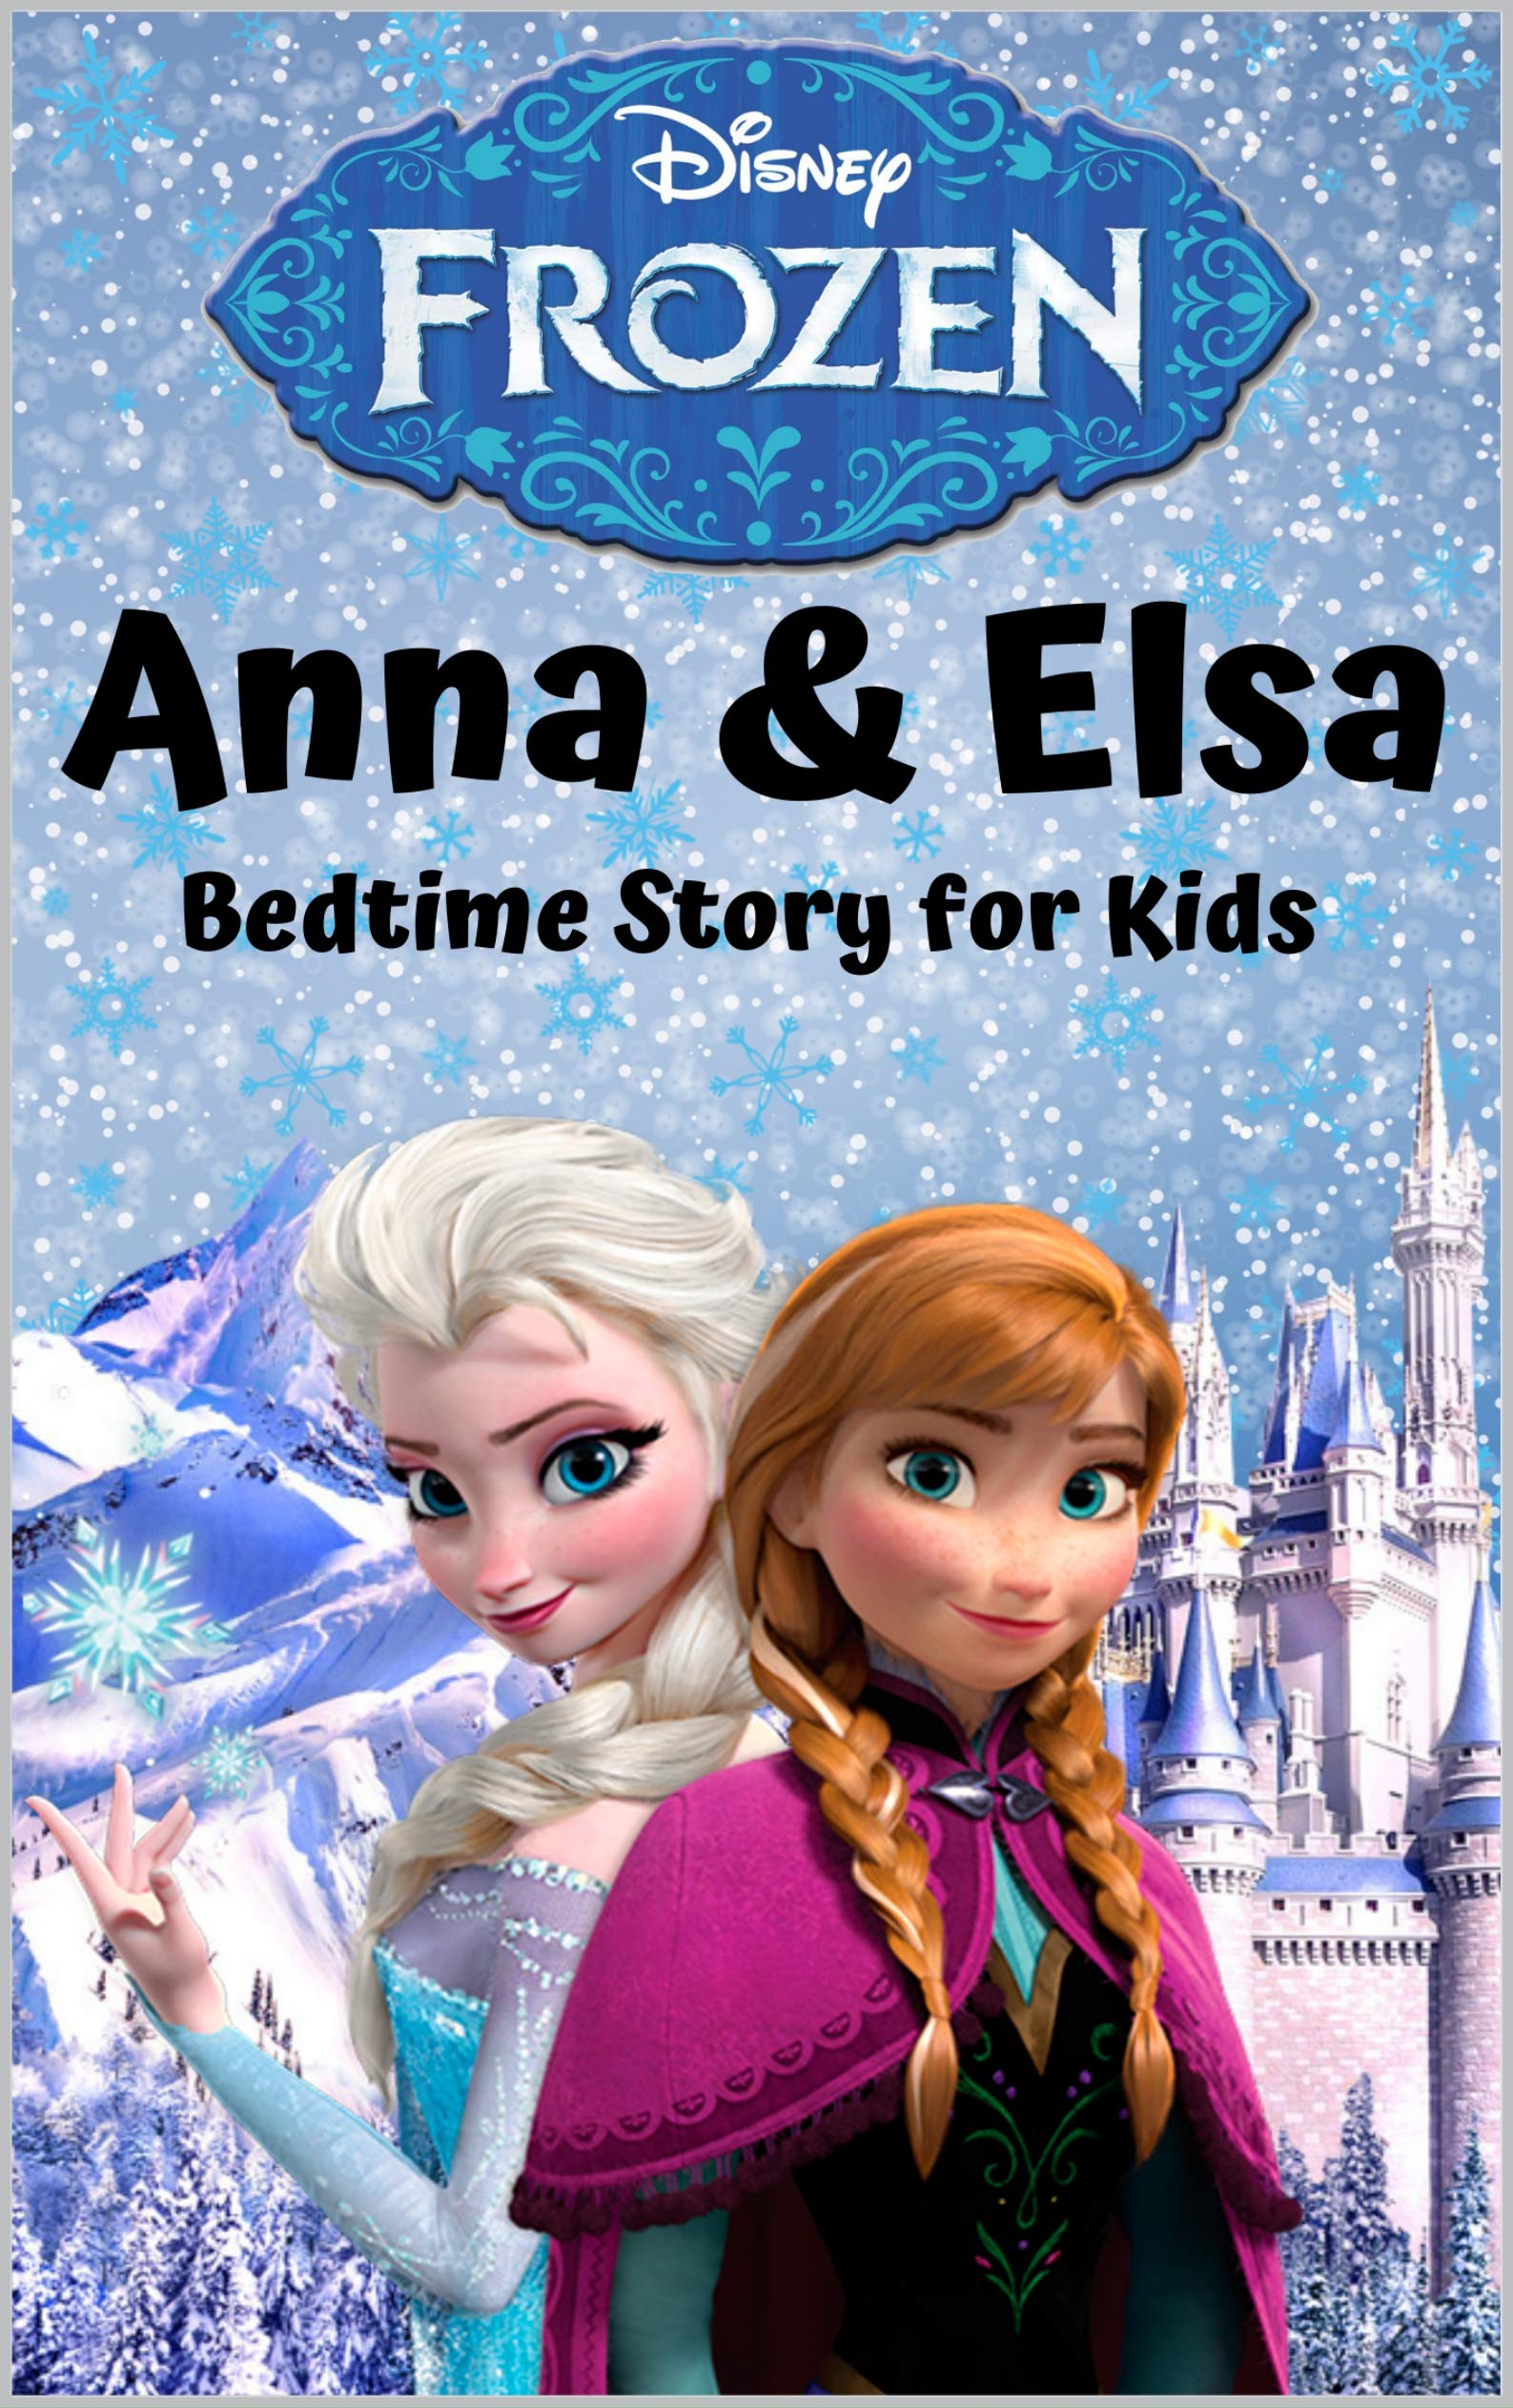 Frozen : Queen Elsa and Princess Anna : Bedtime Story for Kids - Age 4 - 8